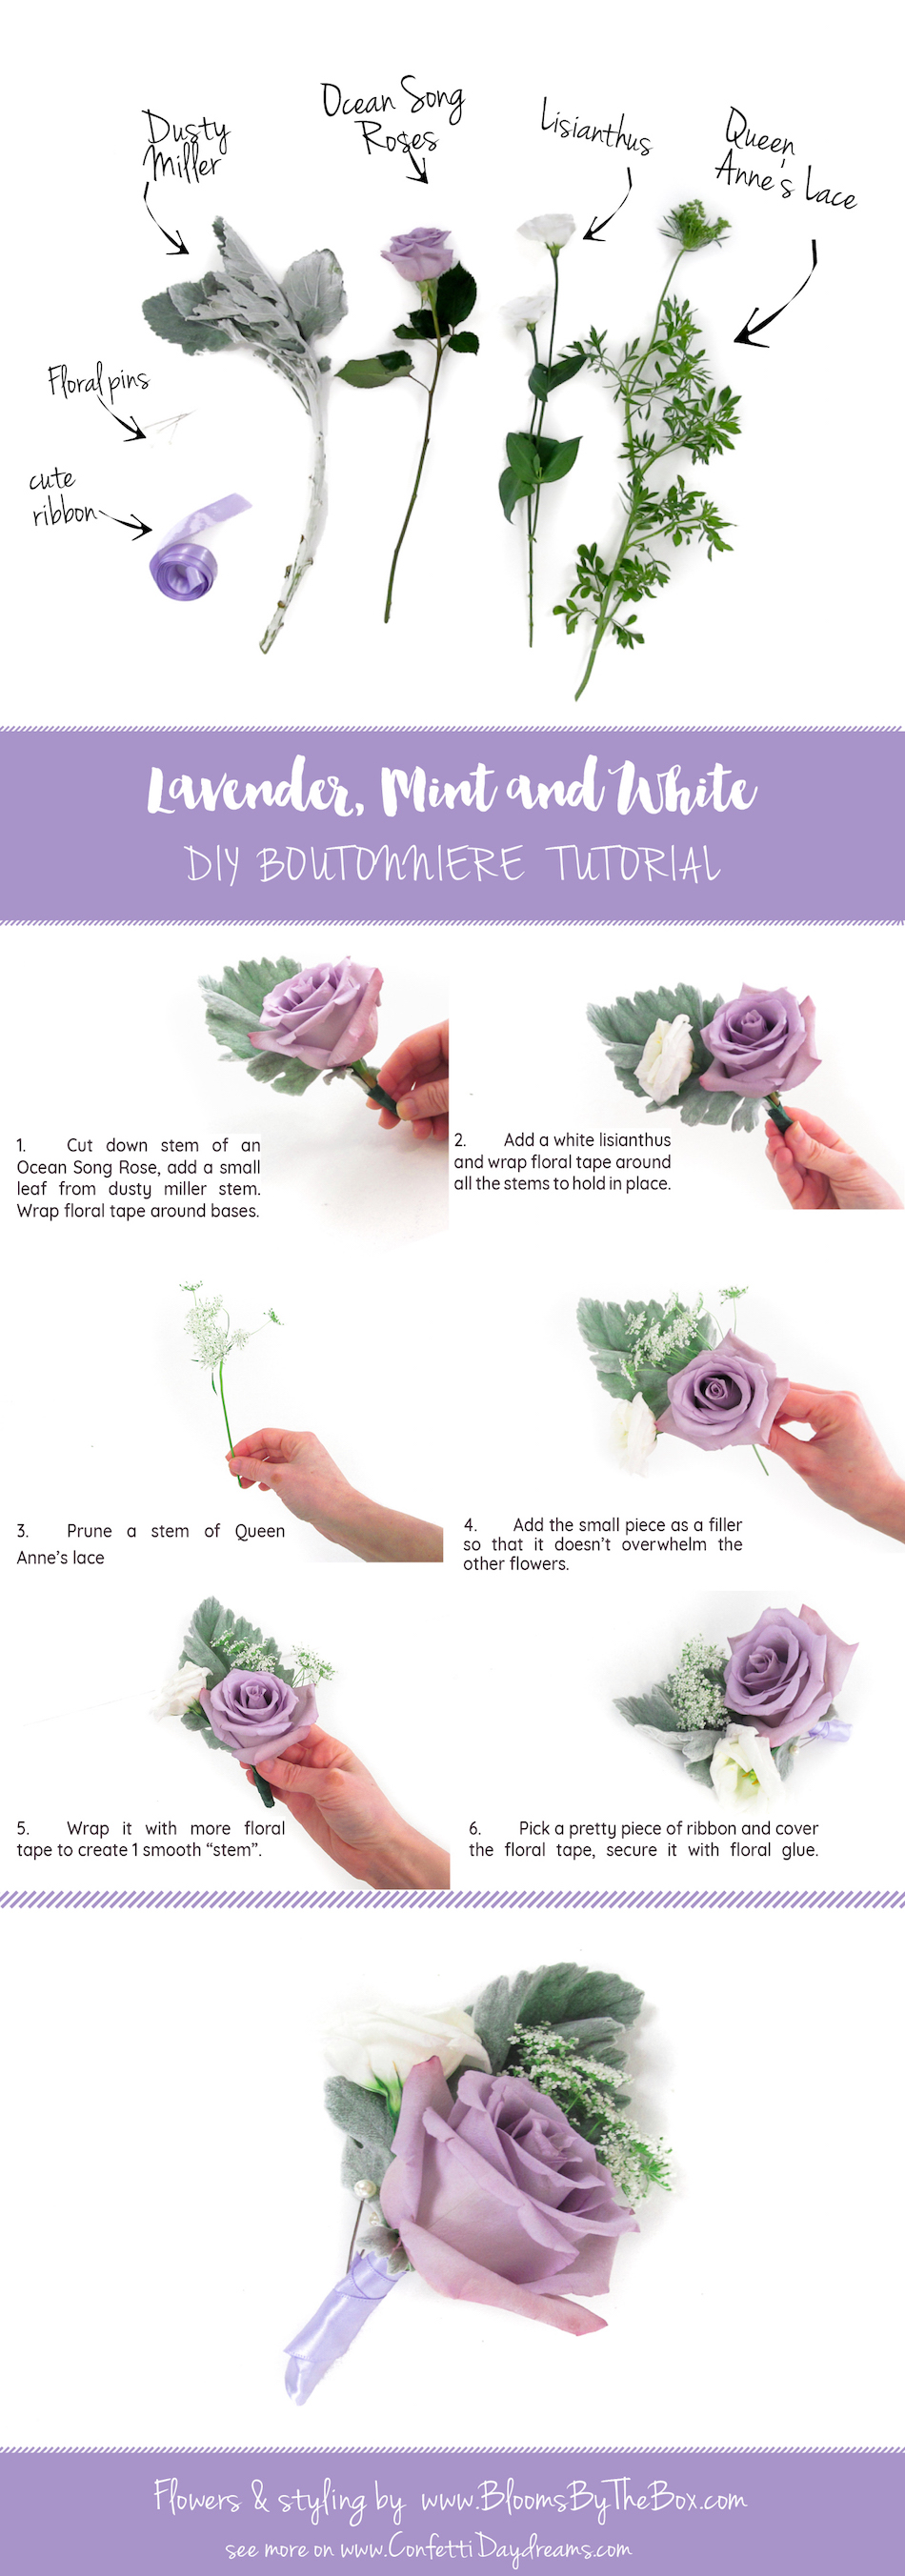 Easy Lavender Mint and White DIY Boutonniere Tutorial